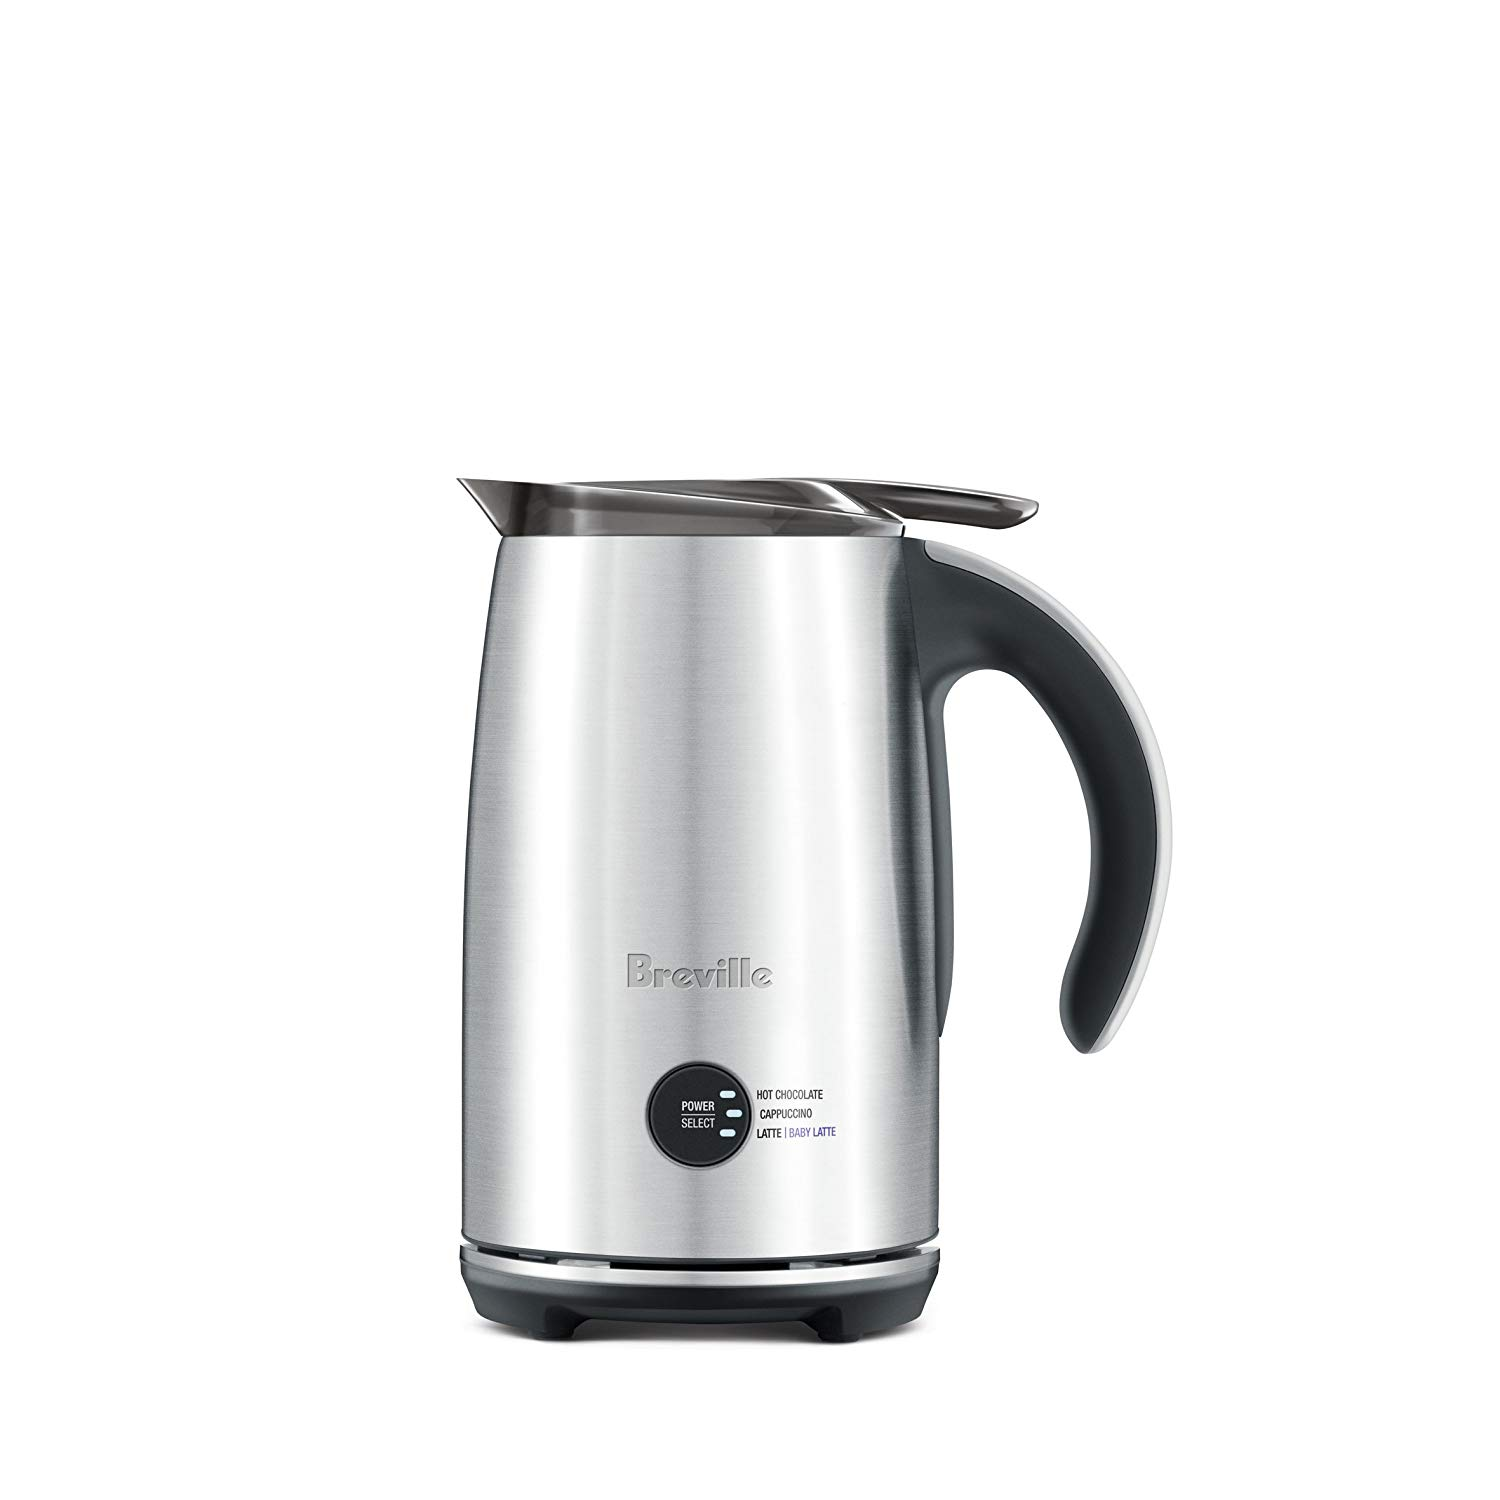 Best milk frother in the market 1